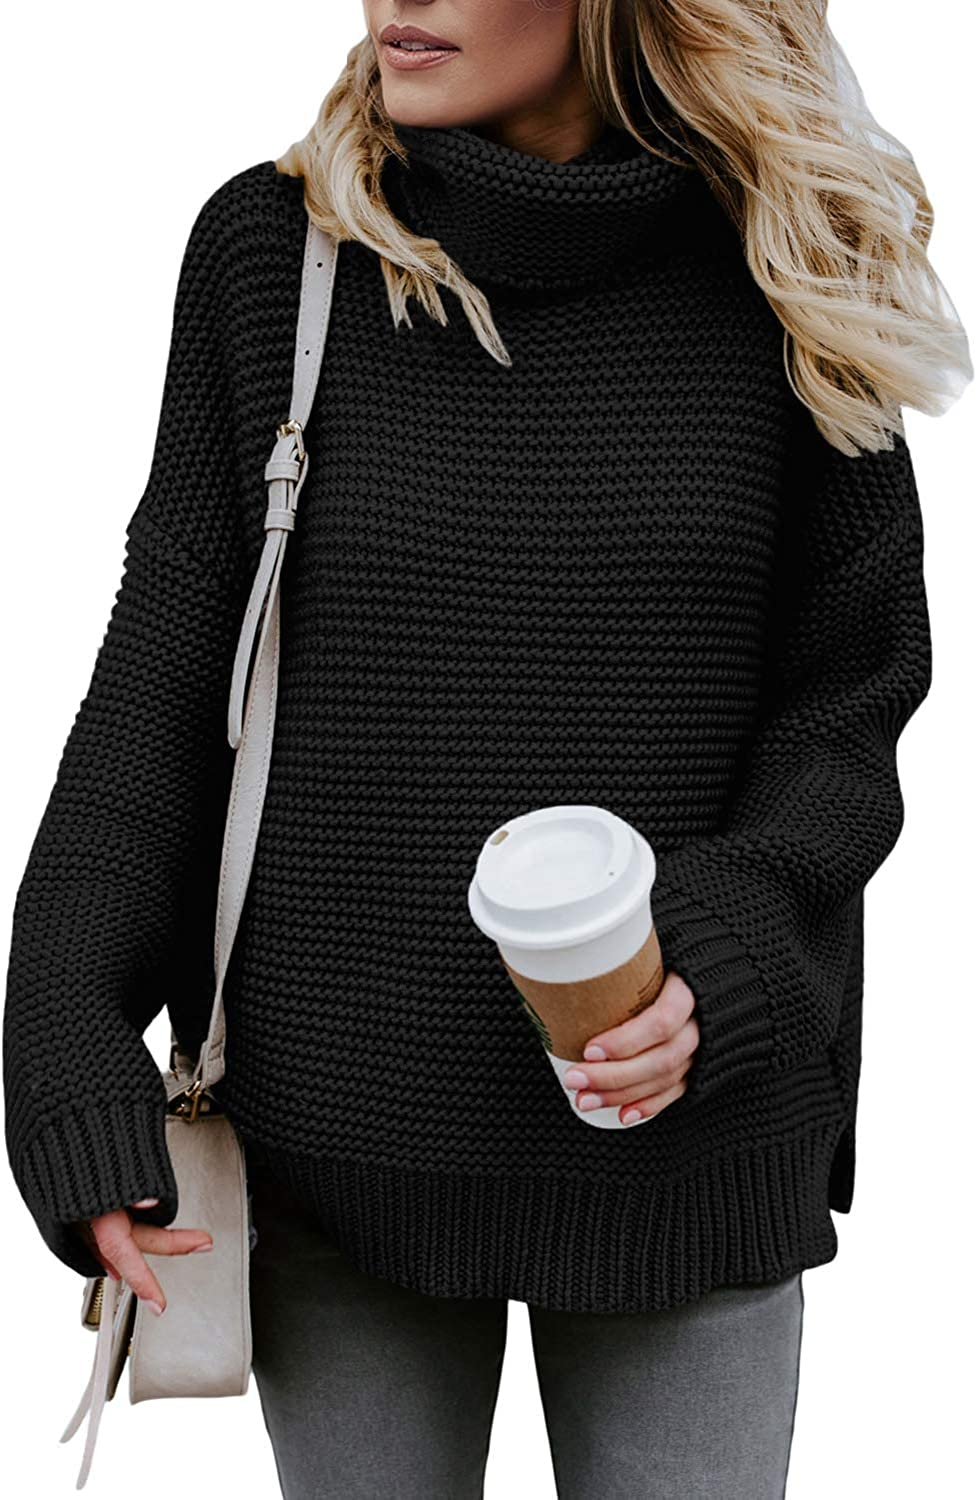 Asvivid Chunky Turtleneck Sweaters for Women Long Sleeve Knit Pullover Sweater Jumper Tops